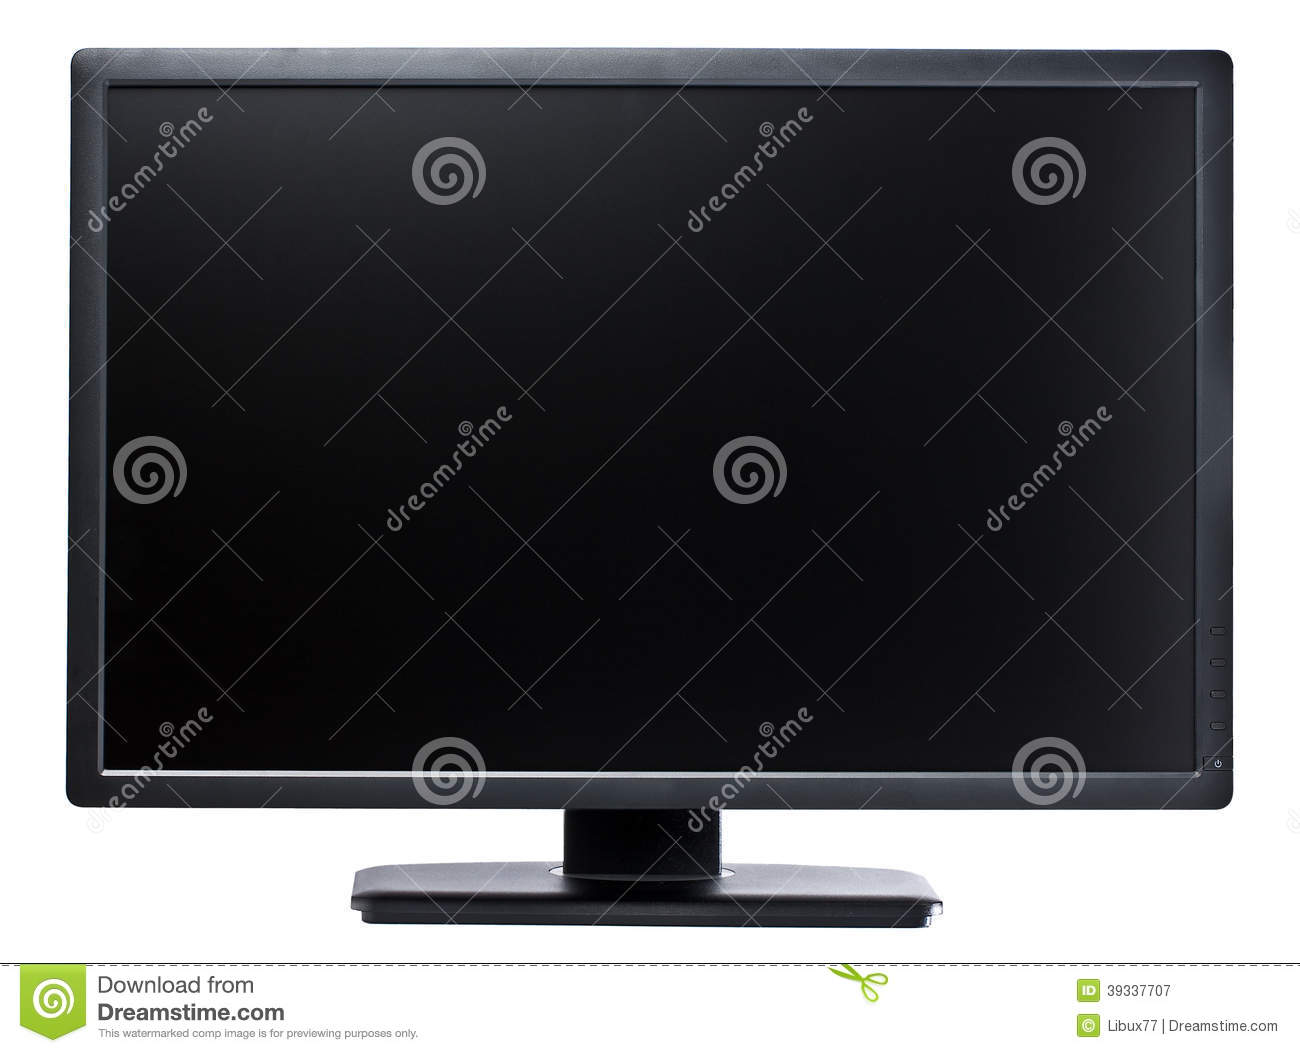 Computer Display 24 inch Black